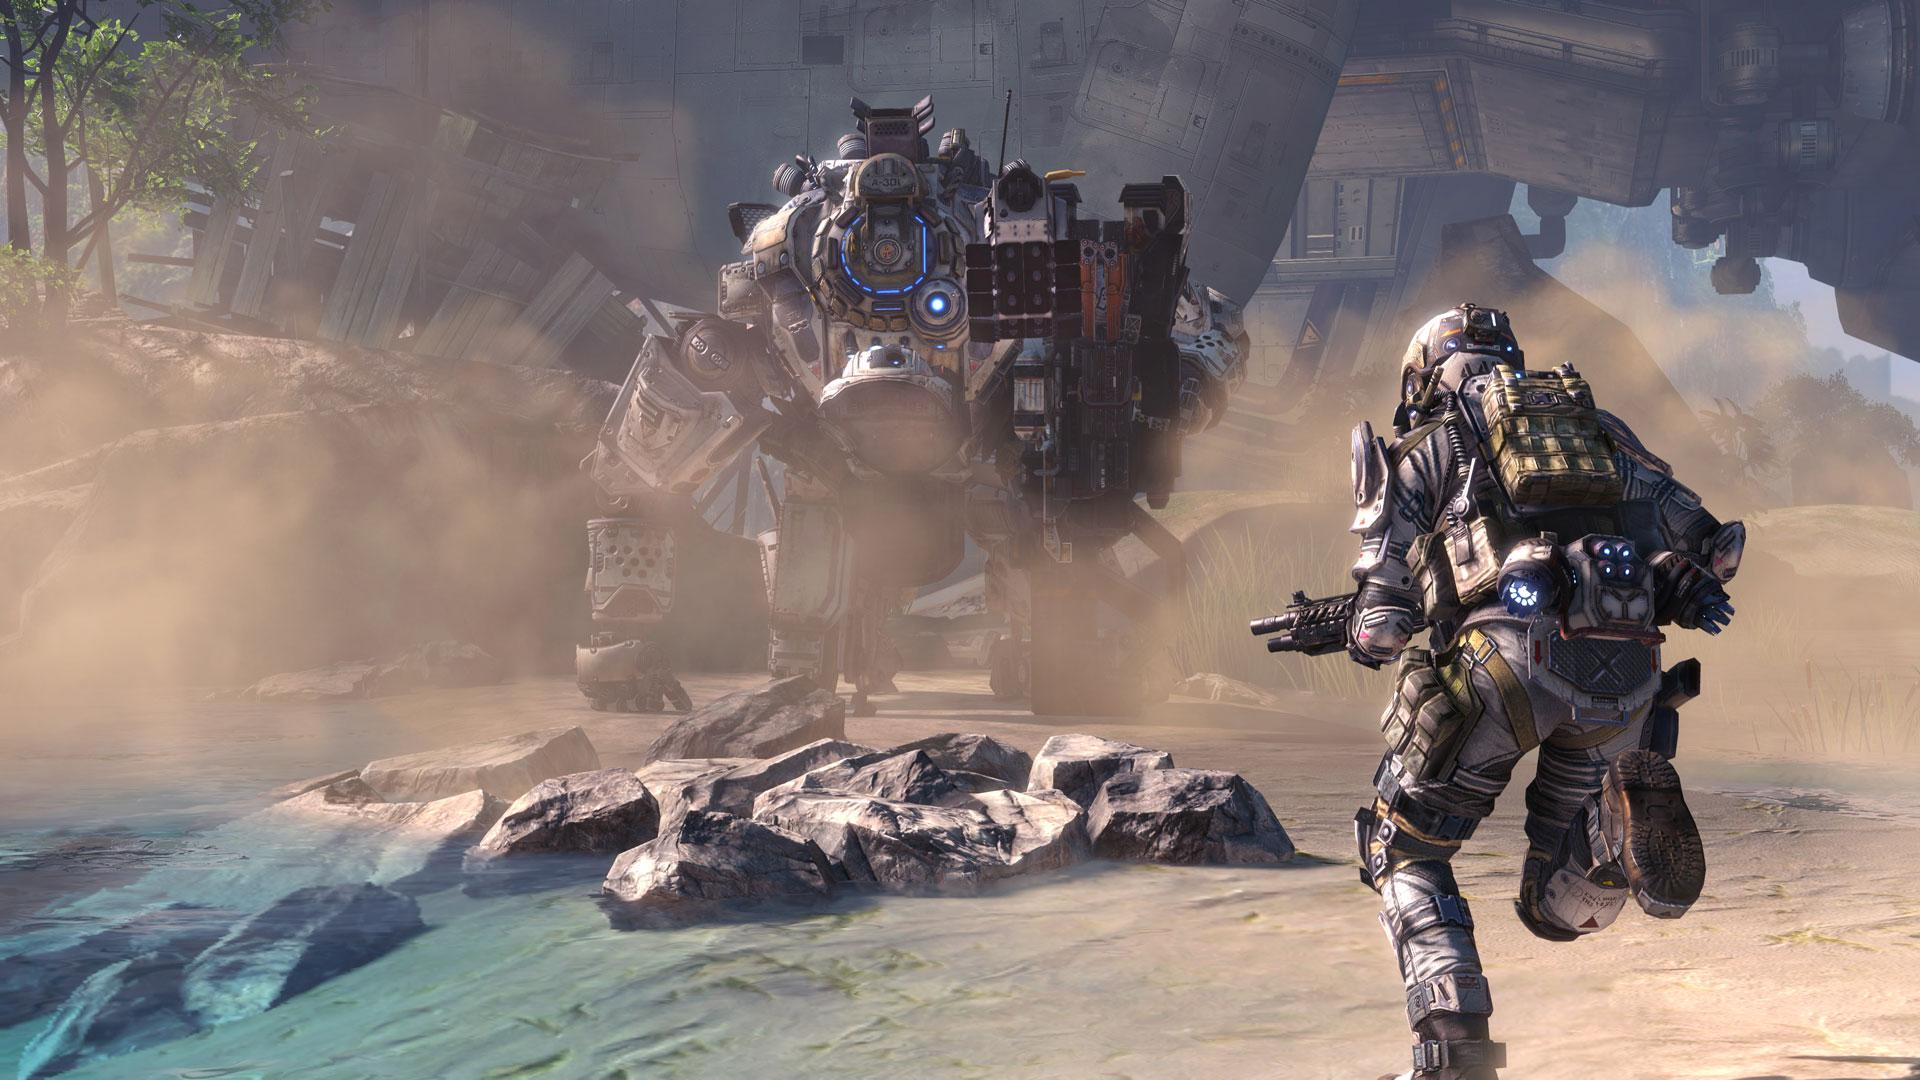 titanfall full hd wallpaper and background image | 1920x1080 | id:467035